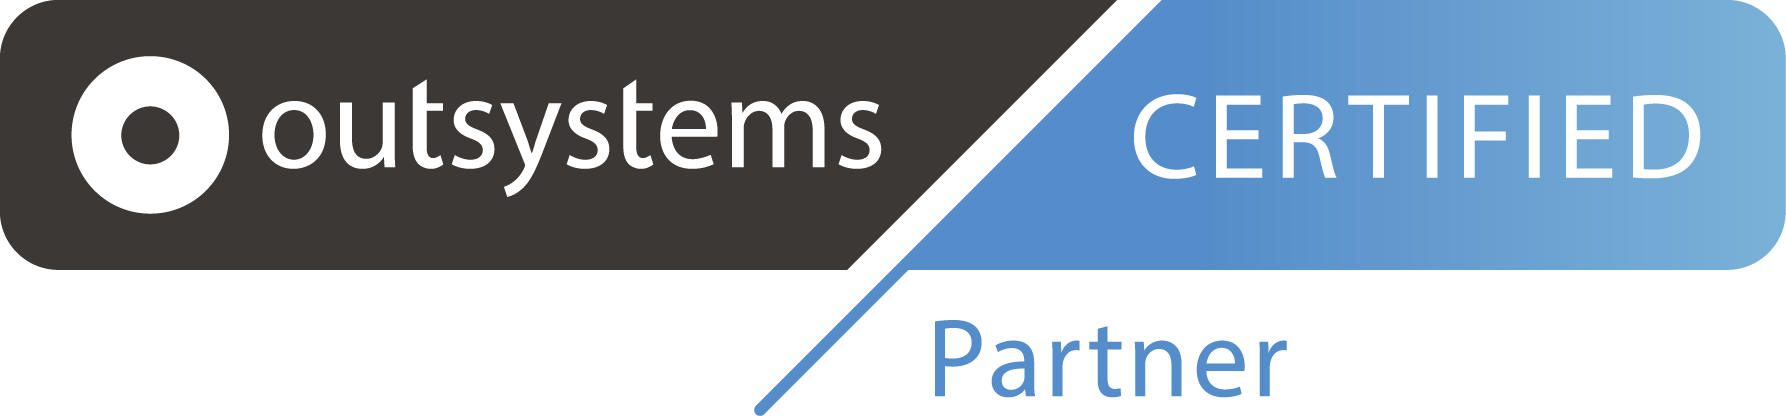 OutSystems Certified Partner in Melbourne, Australia